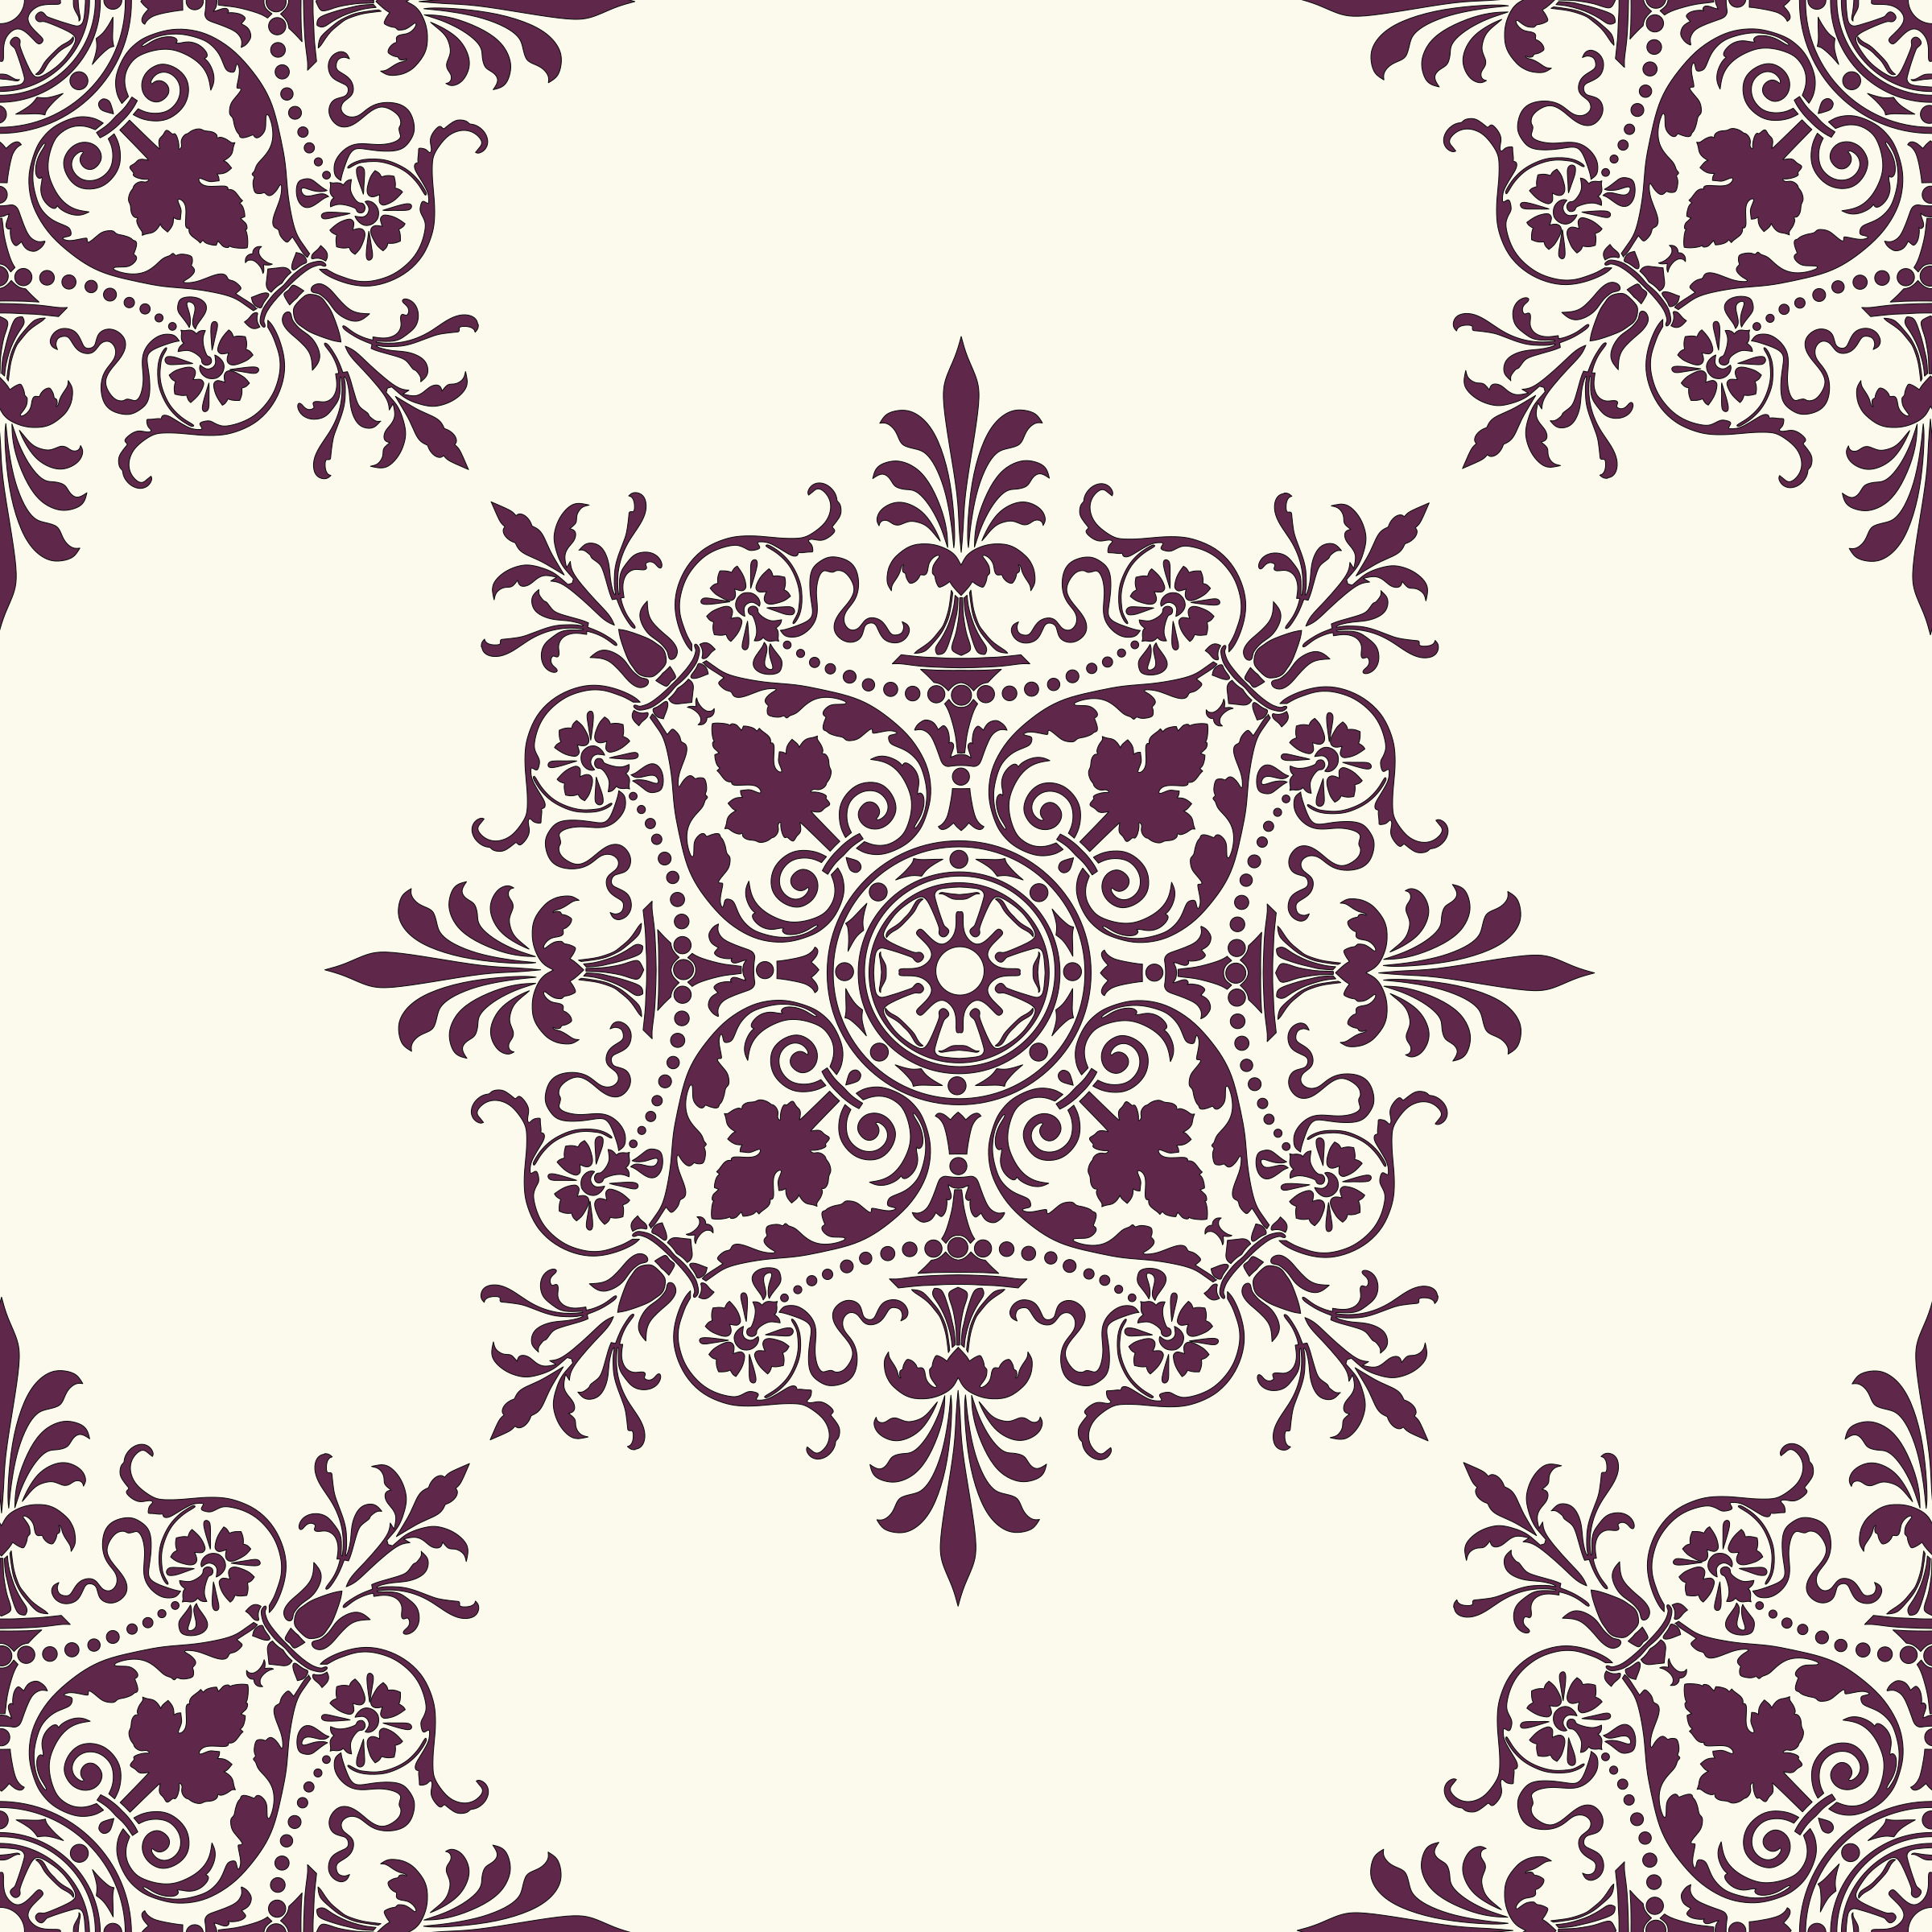 Victorian Background Ornament 2 by kuba